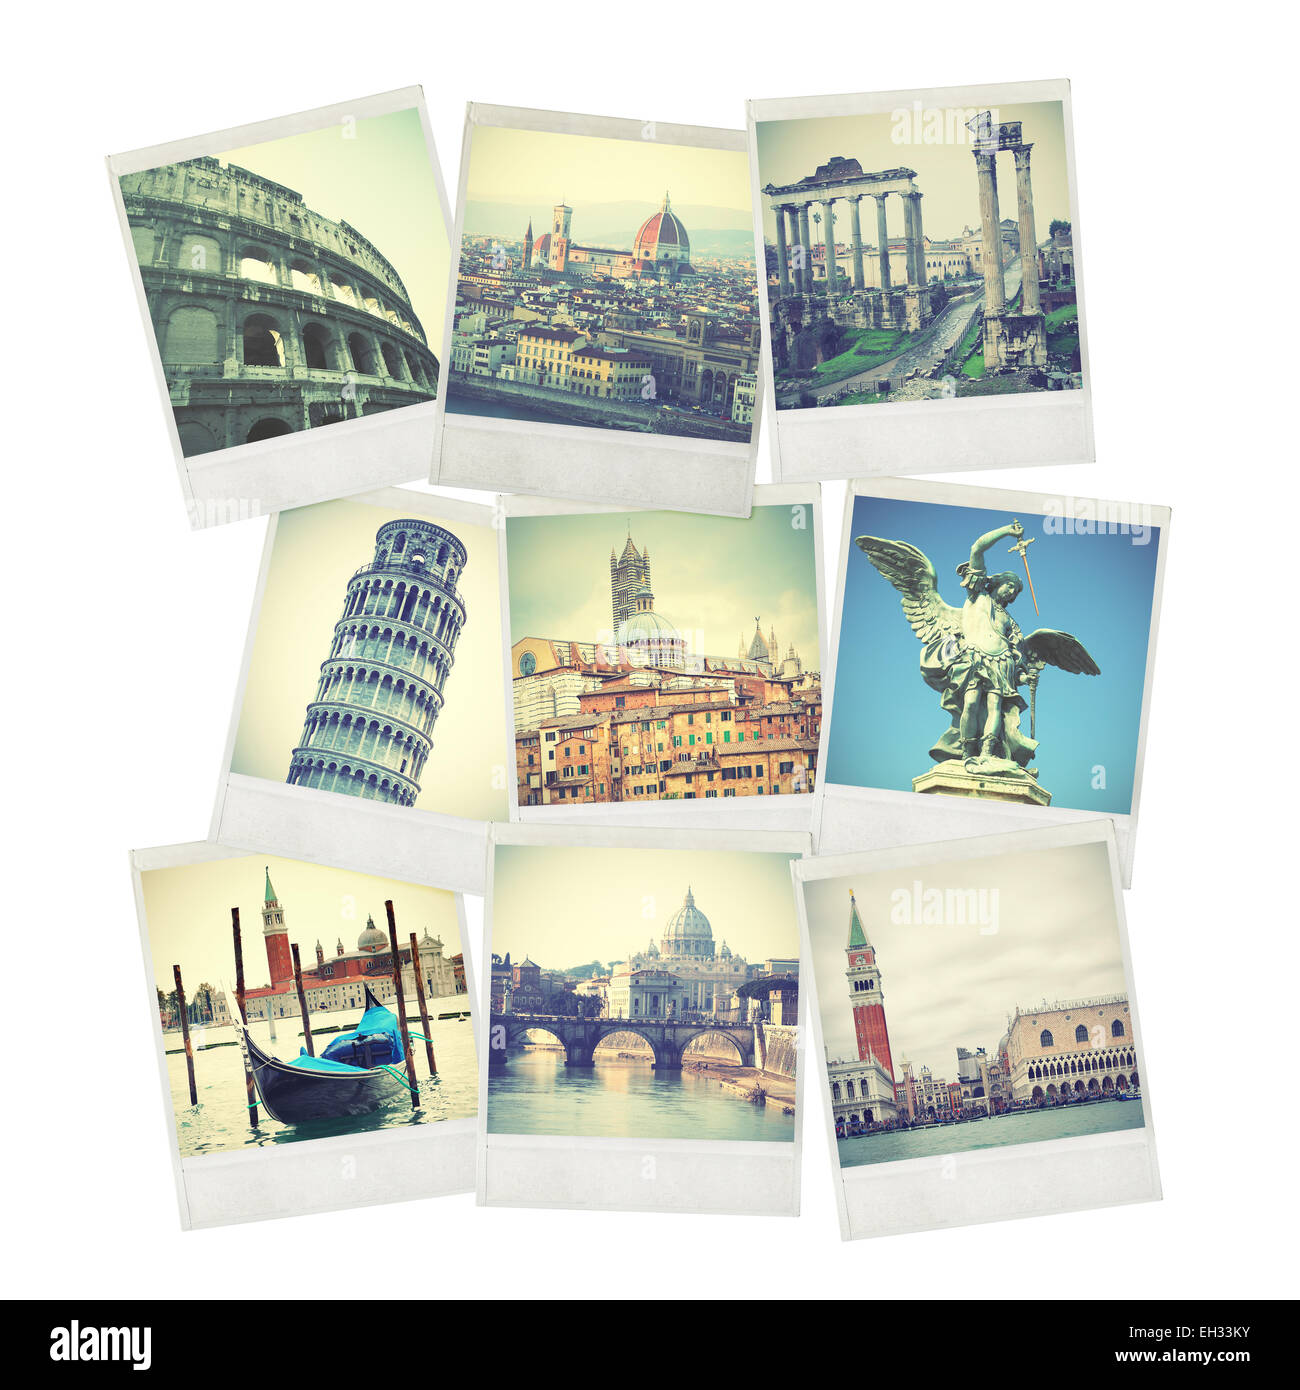 Set of old instant photos of Italy - Stock Image